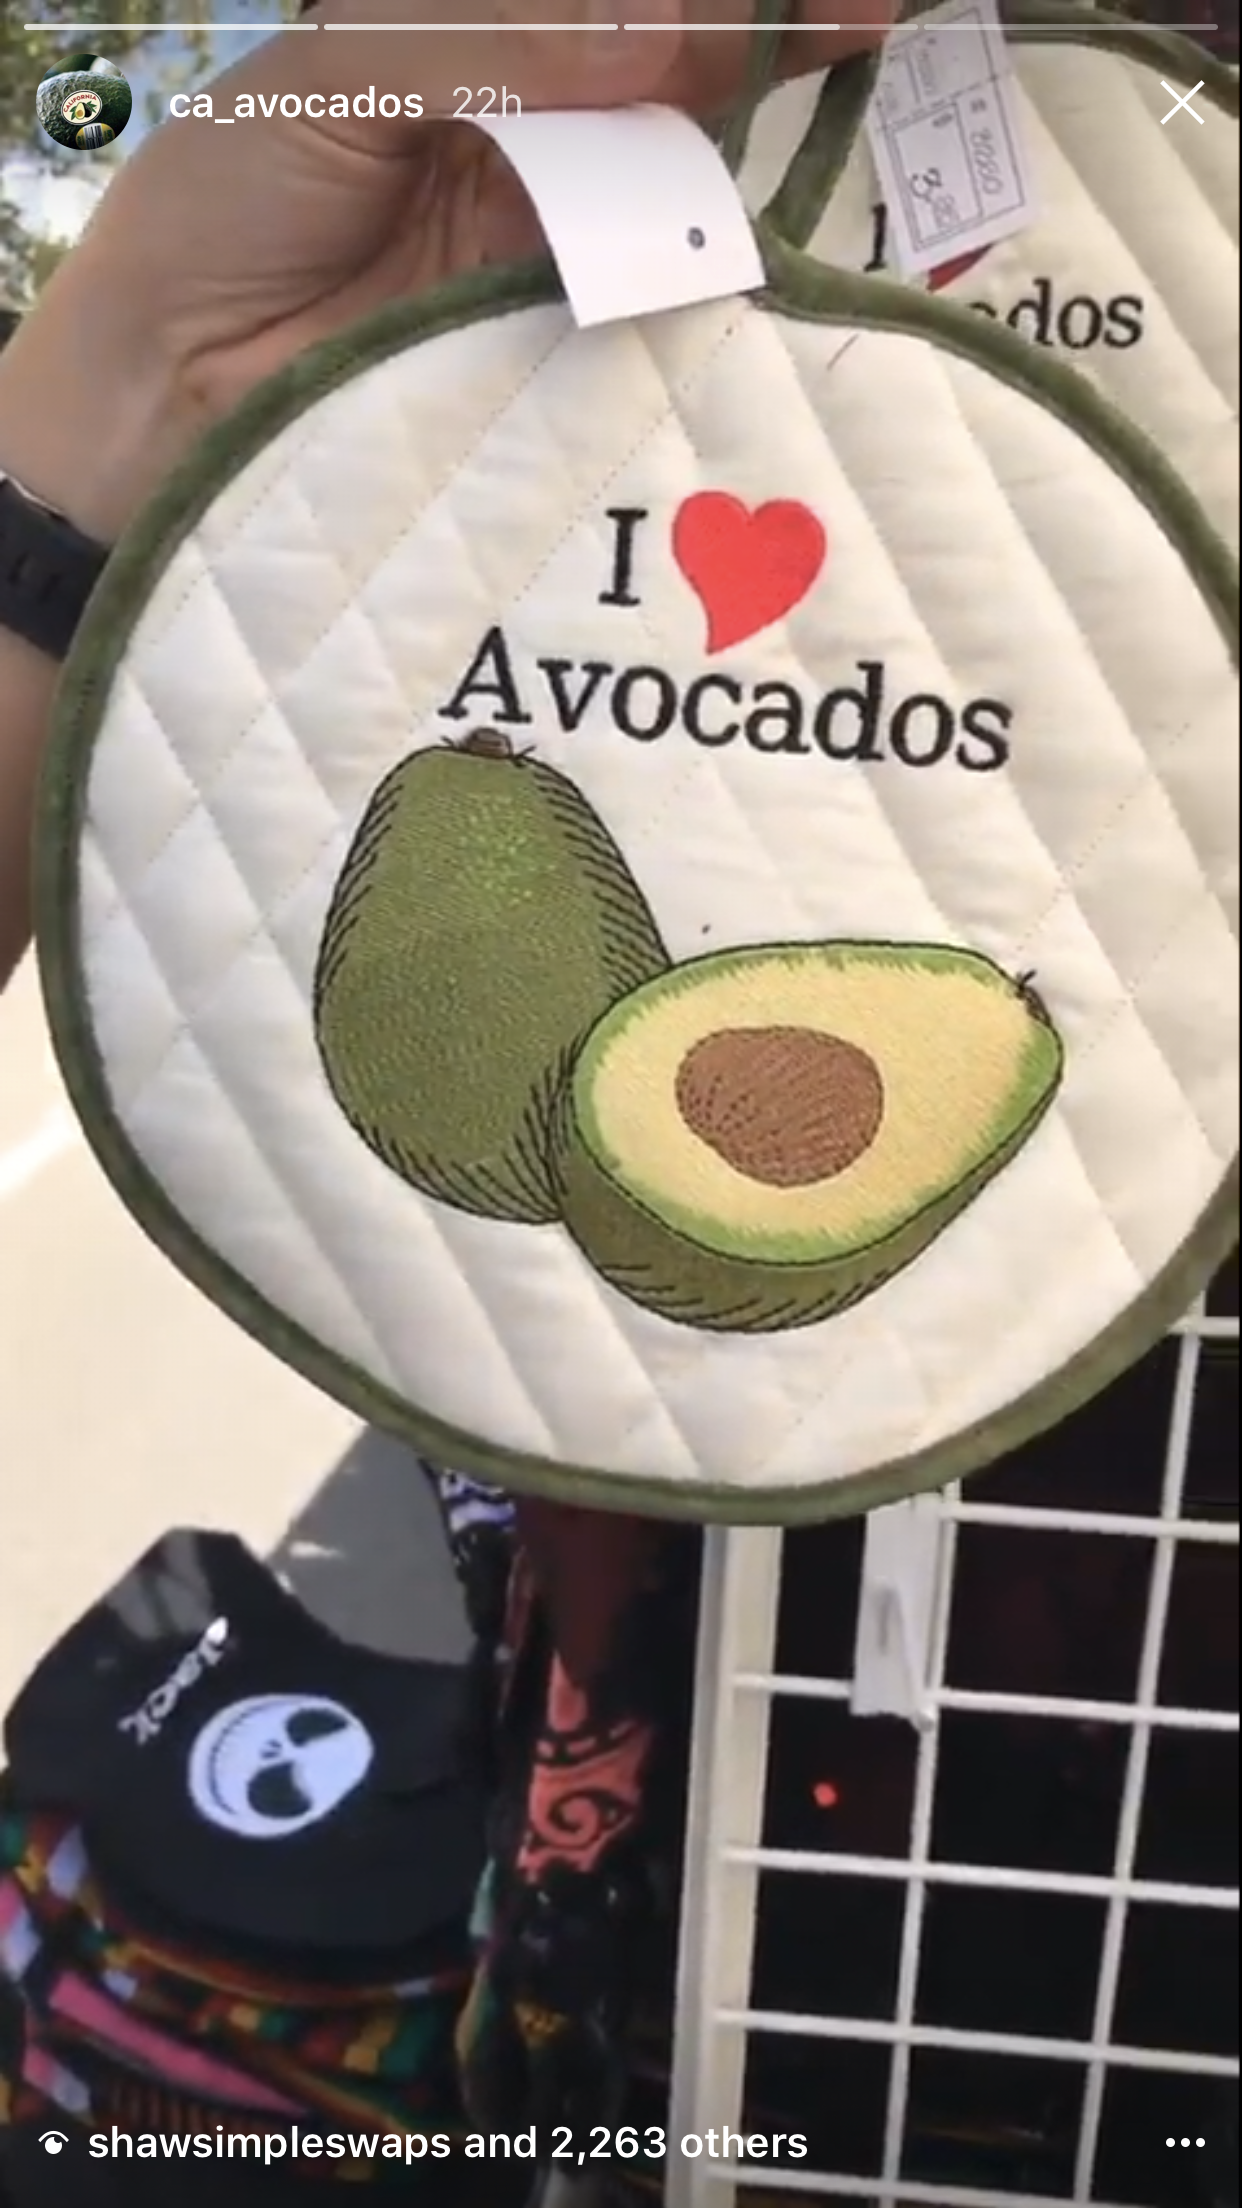 CAC's Instagram fans were treated to photos of California avocado fan paraphernalia from the 31st Annual Fallbrook Avocado Festival.